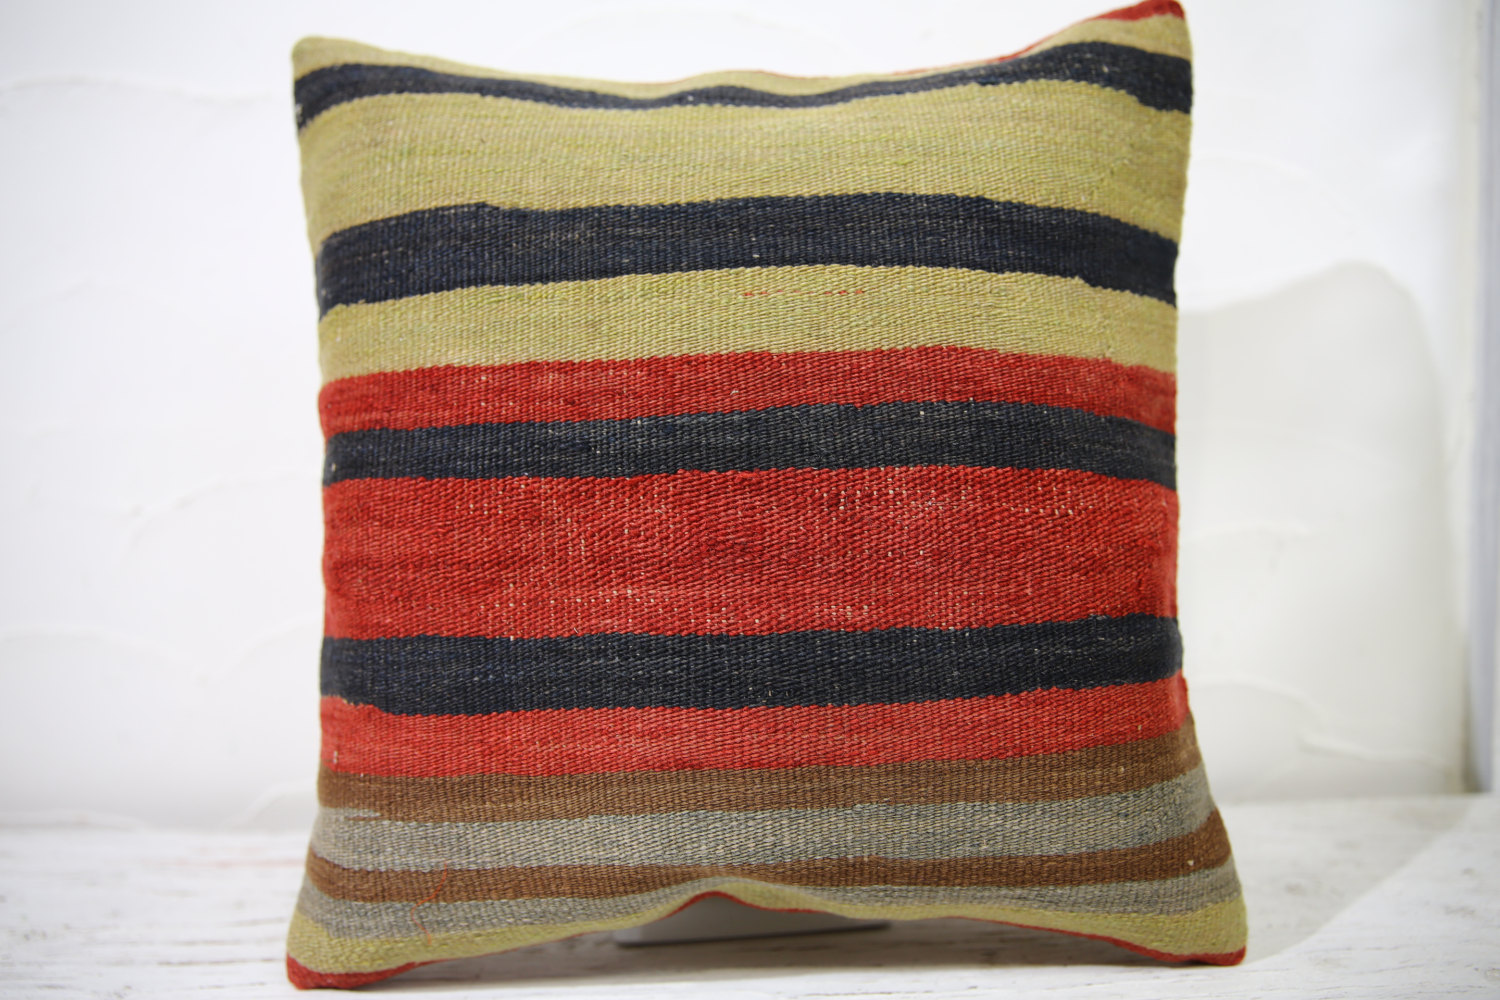 Kilim Pillows |16x16 | Decorative Pillows | 737 | Accent Pillows ,turkish pillow